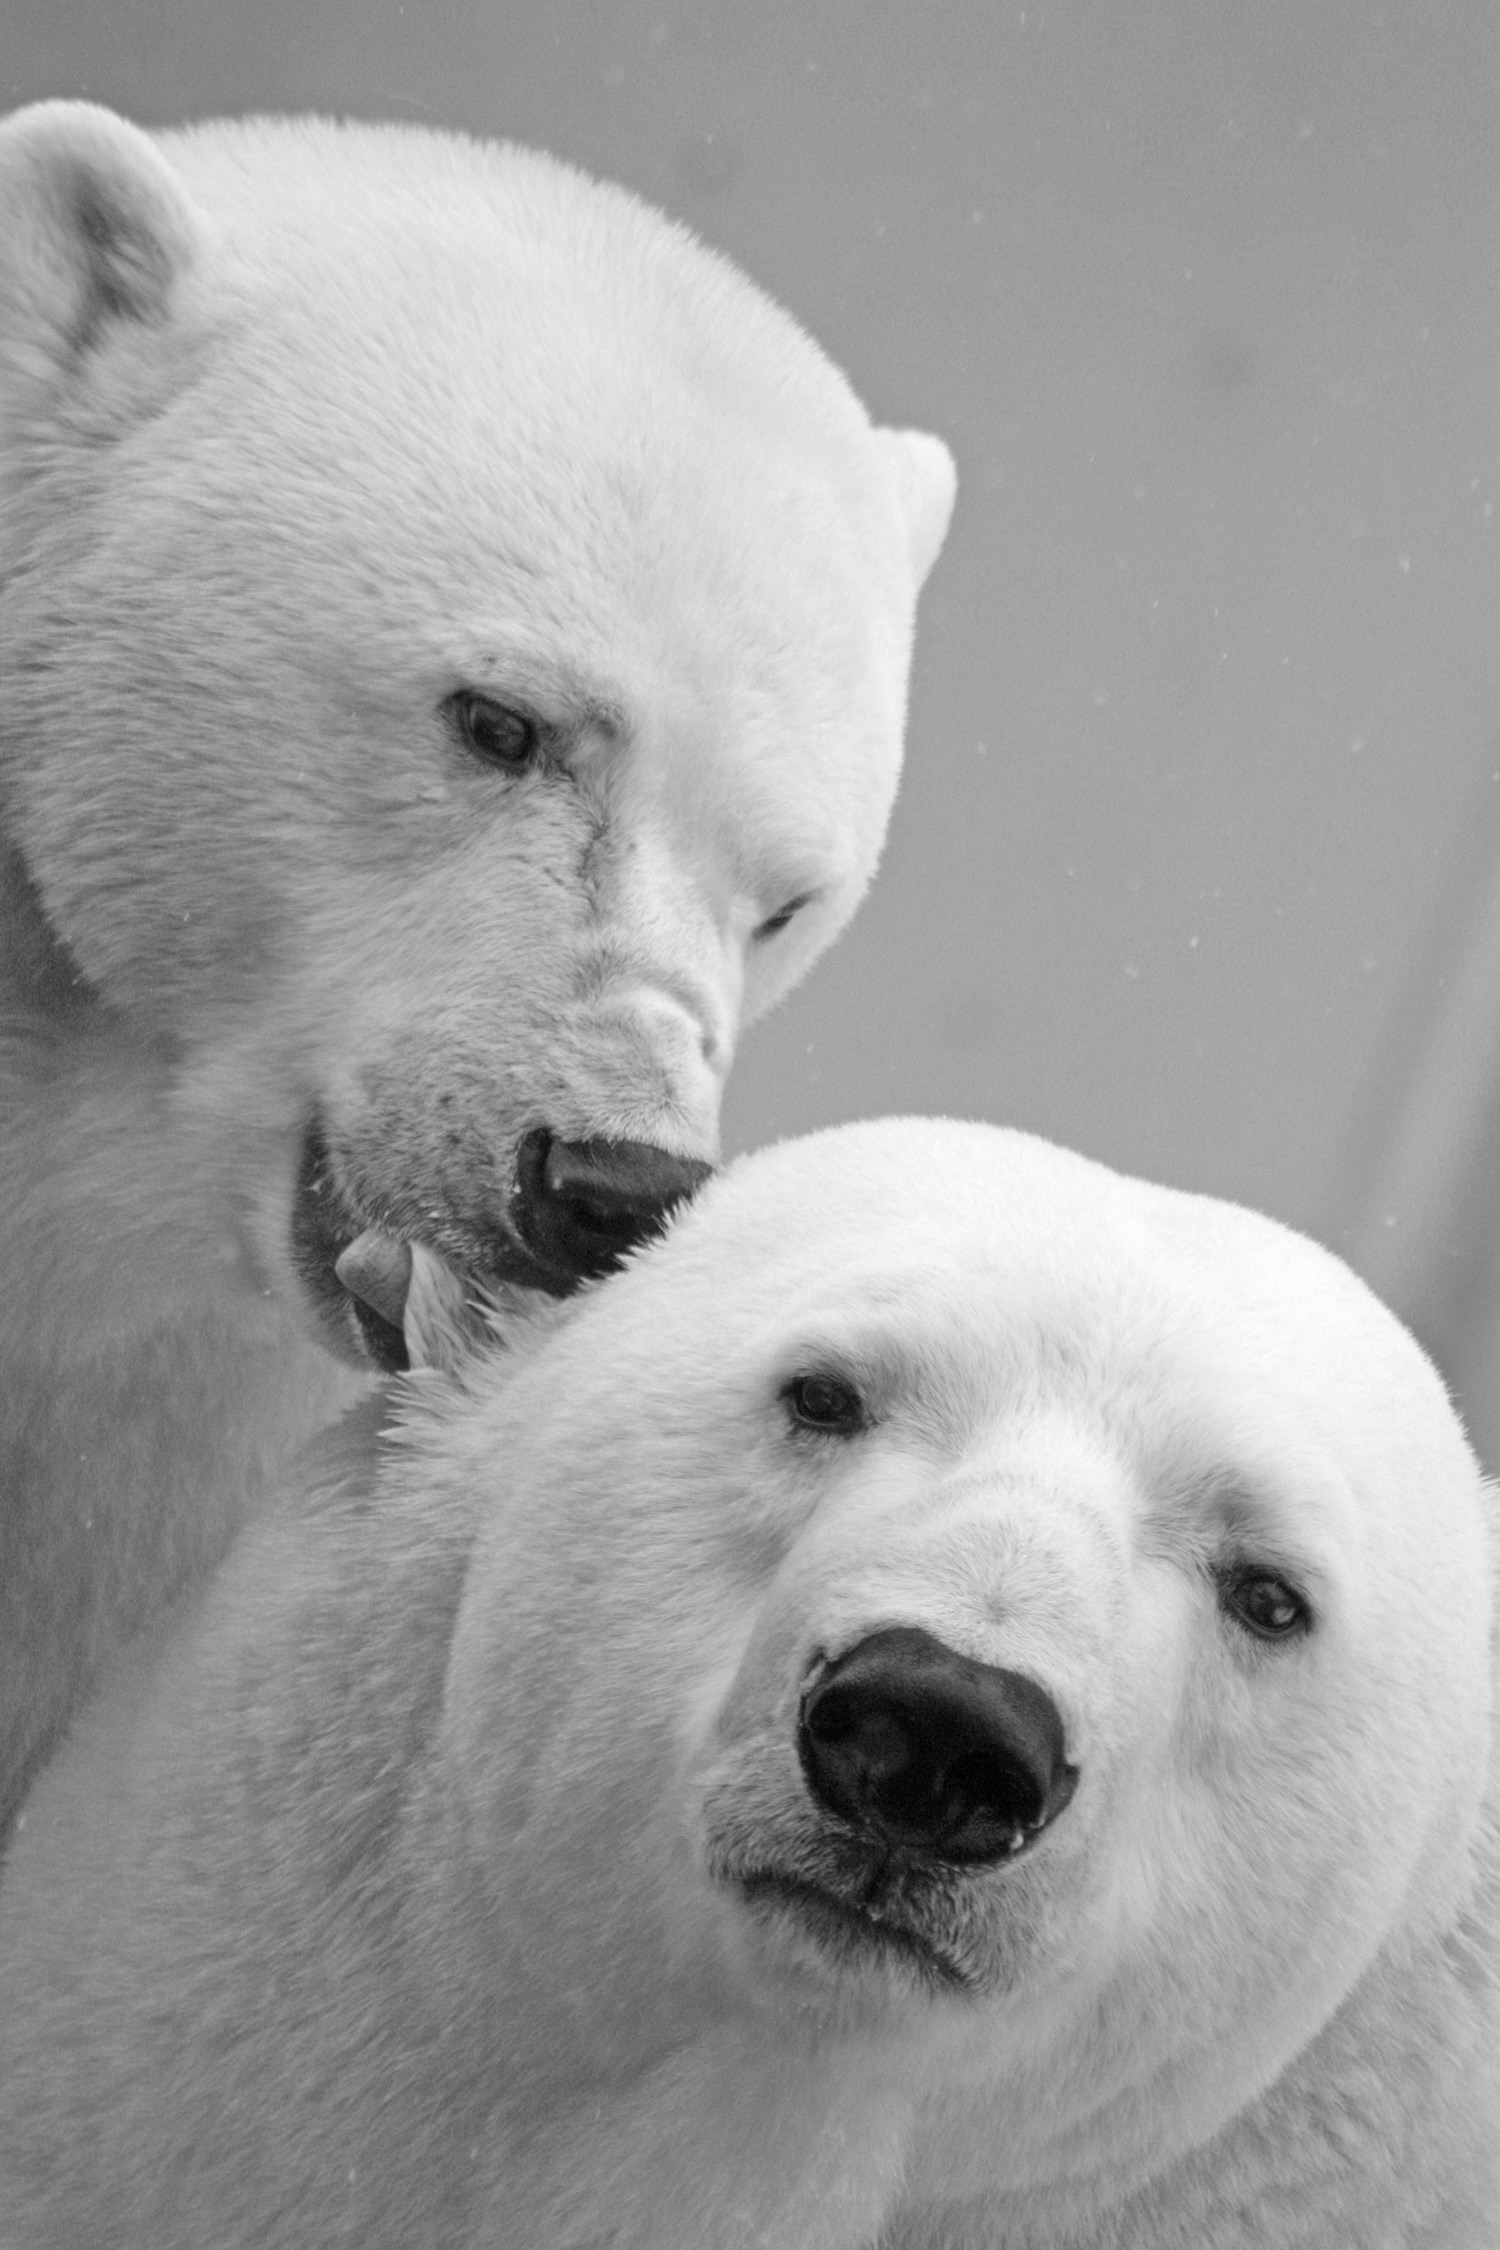 Two polar bears nuzzling